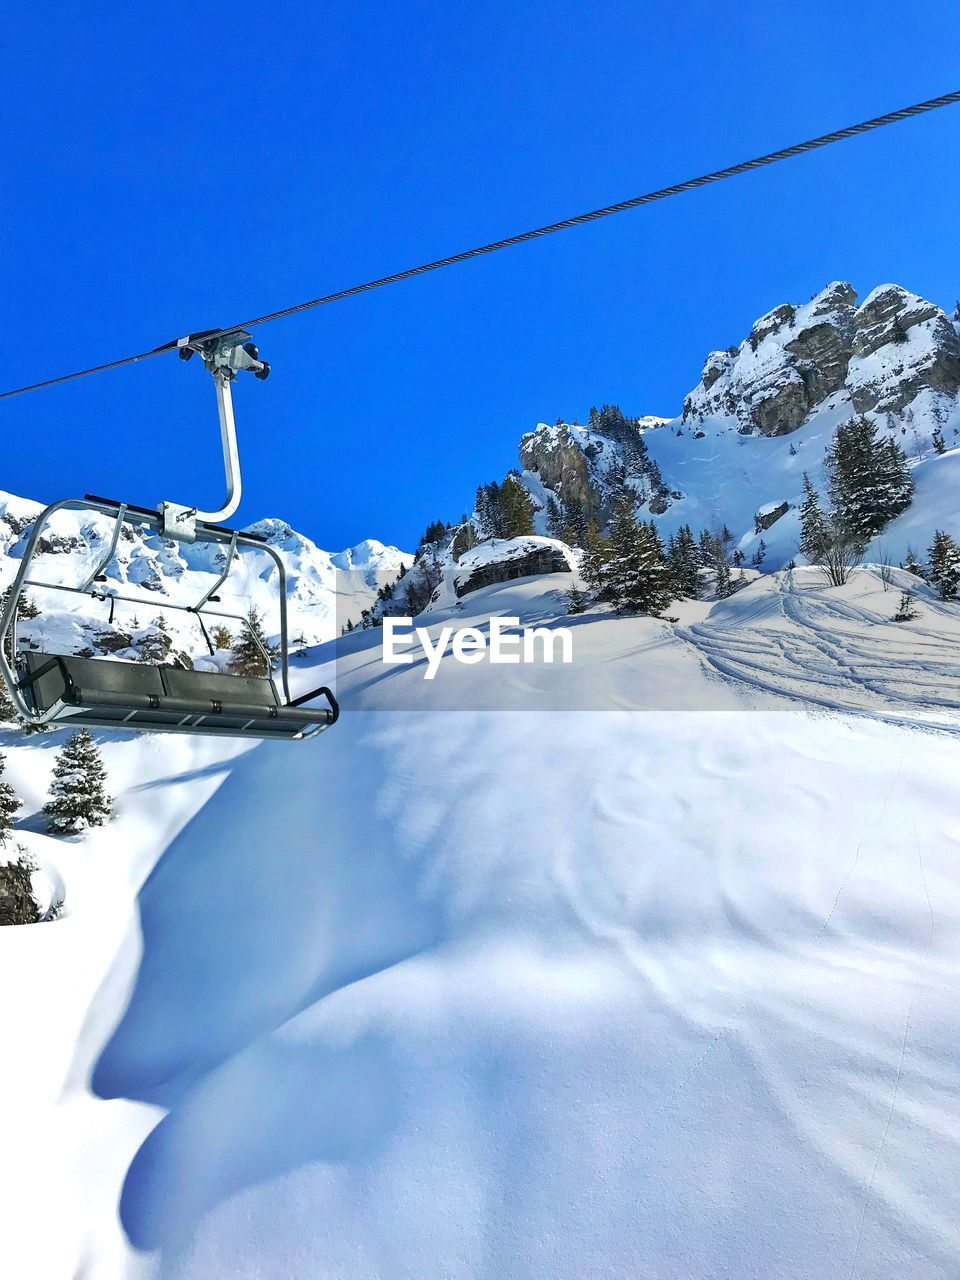 snow, cold temperature, winter, mountain, snowcapped mountain, scenics - nature, sky, nature, beauty in nature, white color, cable car, day, blue, frozen, cable, transportation, covering, mode of transportation, overhead cable car, no people, mountain range, outdoors